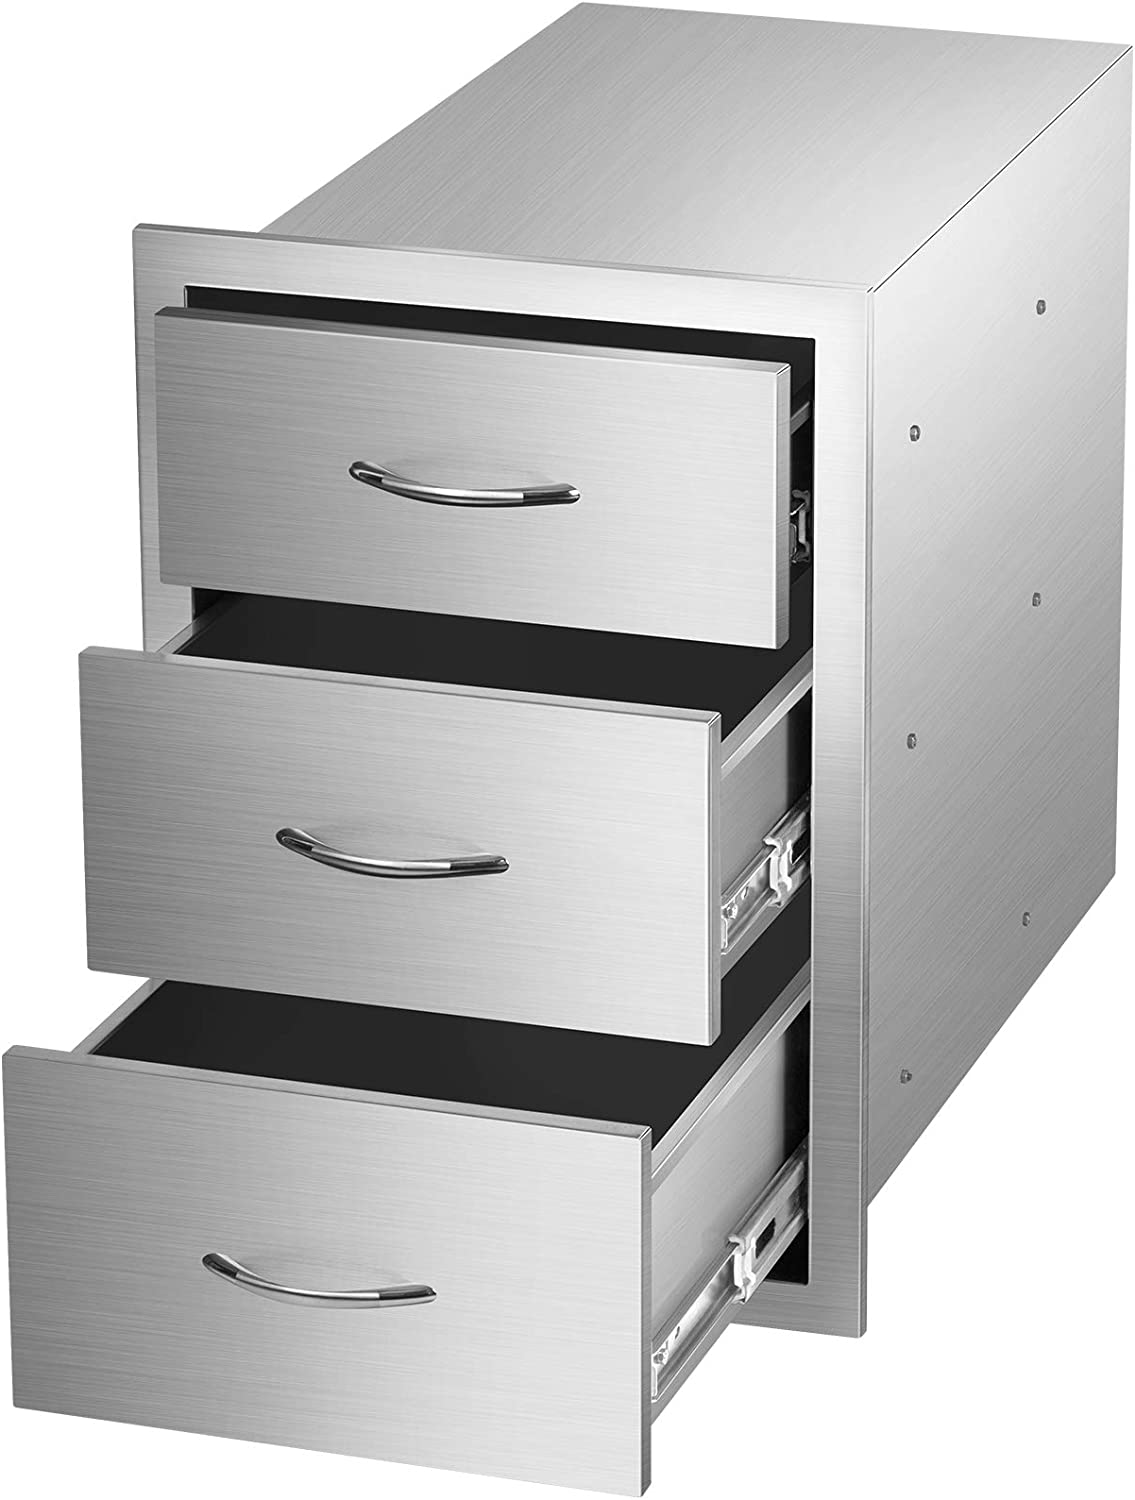 Outdoor Barbecue Drawers, Stainless Steel Kitchen Drawers with Handle,3-Layer Design,Outside Flush Mount Storage Cabinet for Restaurant or Home,BBQ Island,Patio Grill Station(14.2W x 20.6H x 23D)